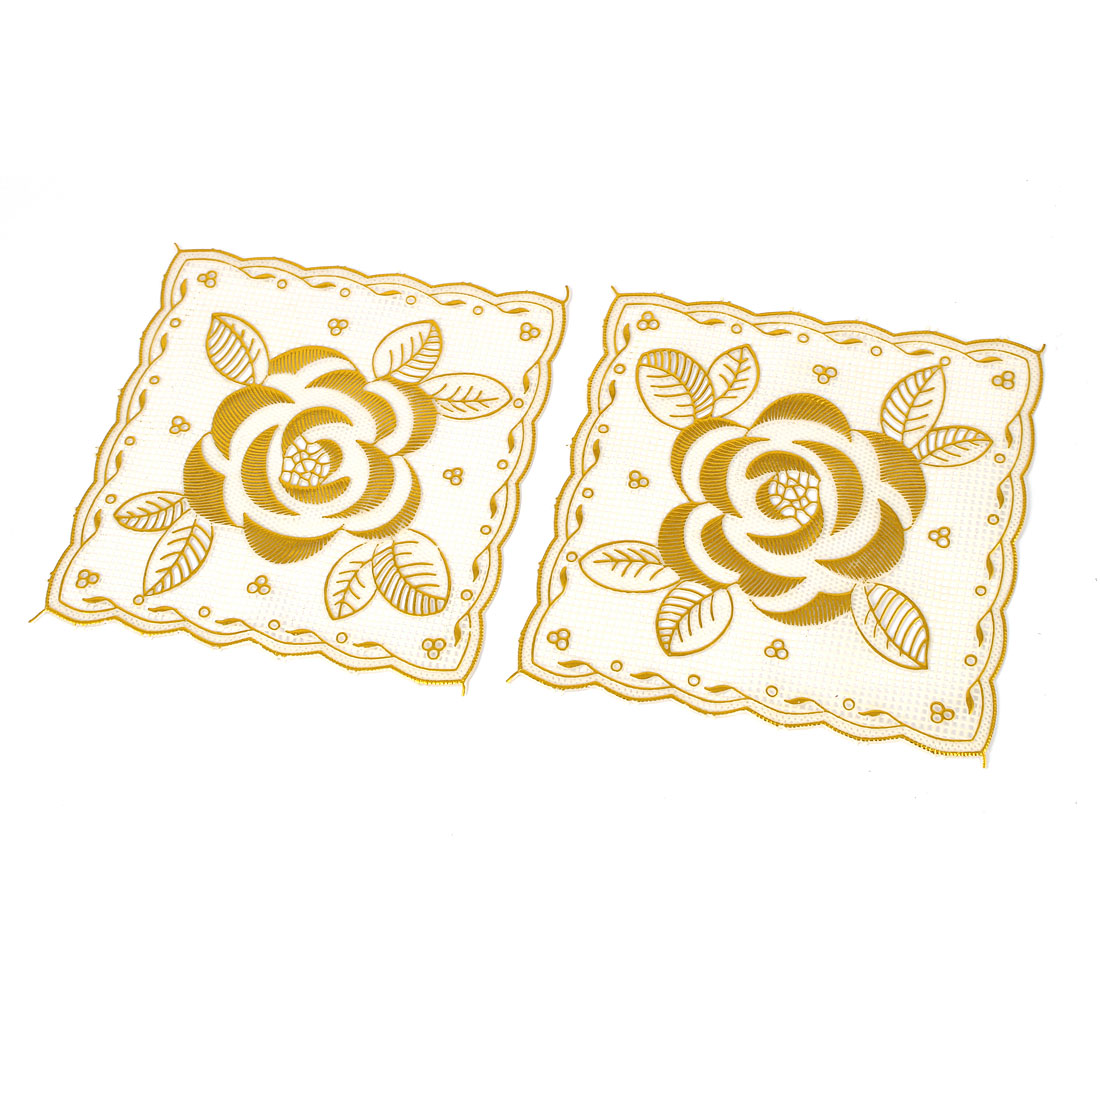 Household Flower Prints Plastic Square Tableware Hot Heat Resistant Mat Pads Gold Tone 2pcs